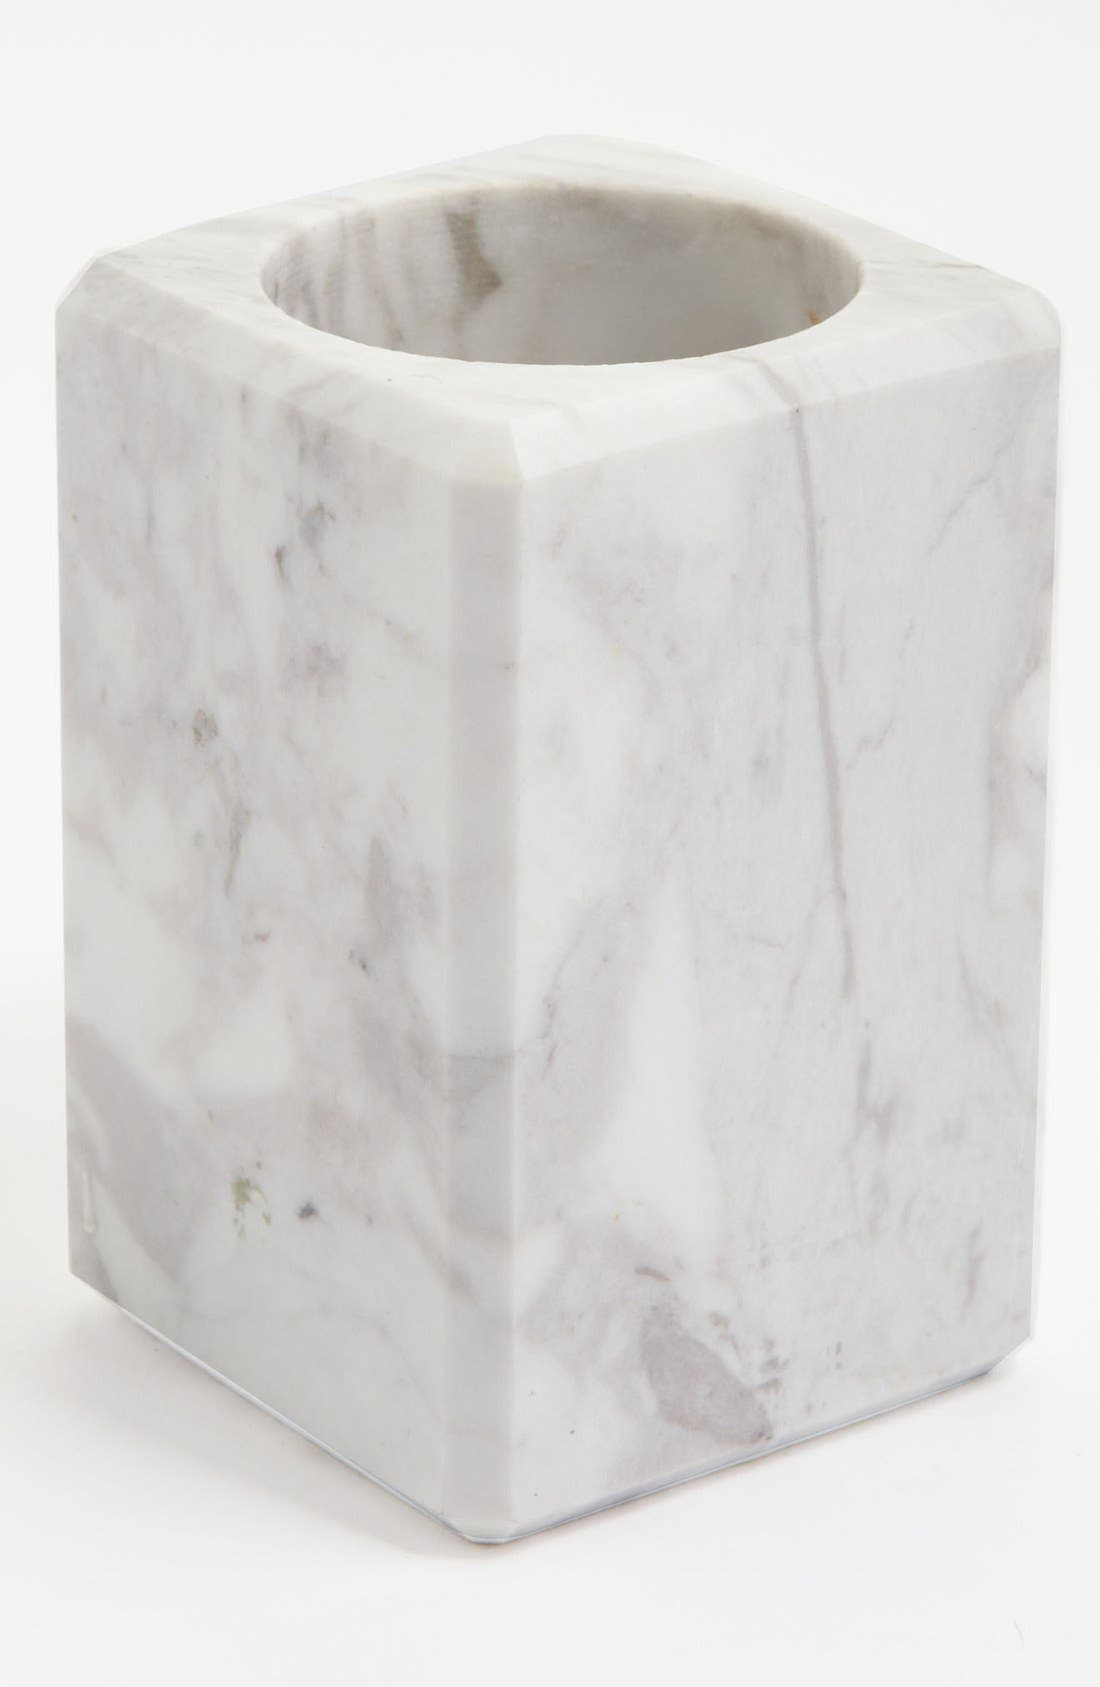 Alternate Image 1 Selected - Waterworks Studio 'Luna' White Marble Tumbler (Online Only)